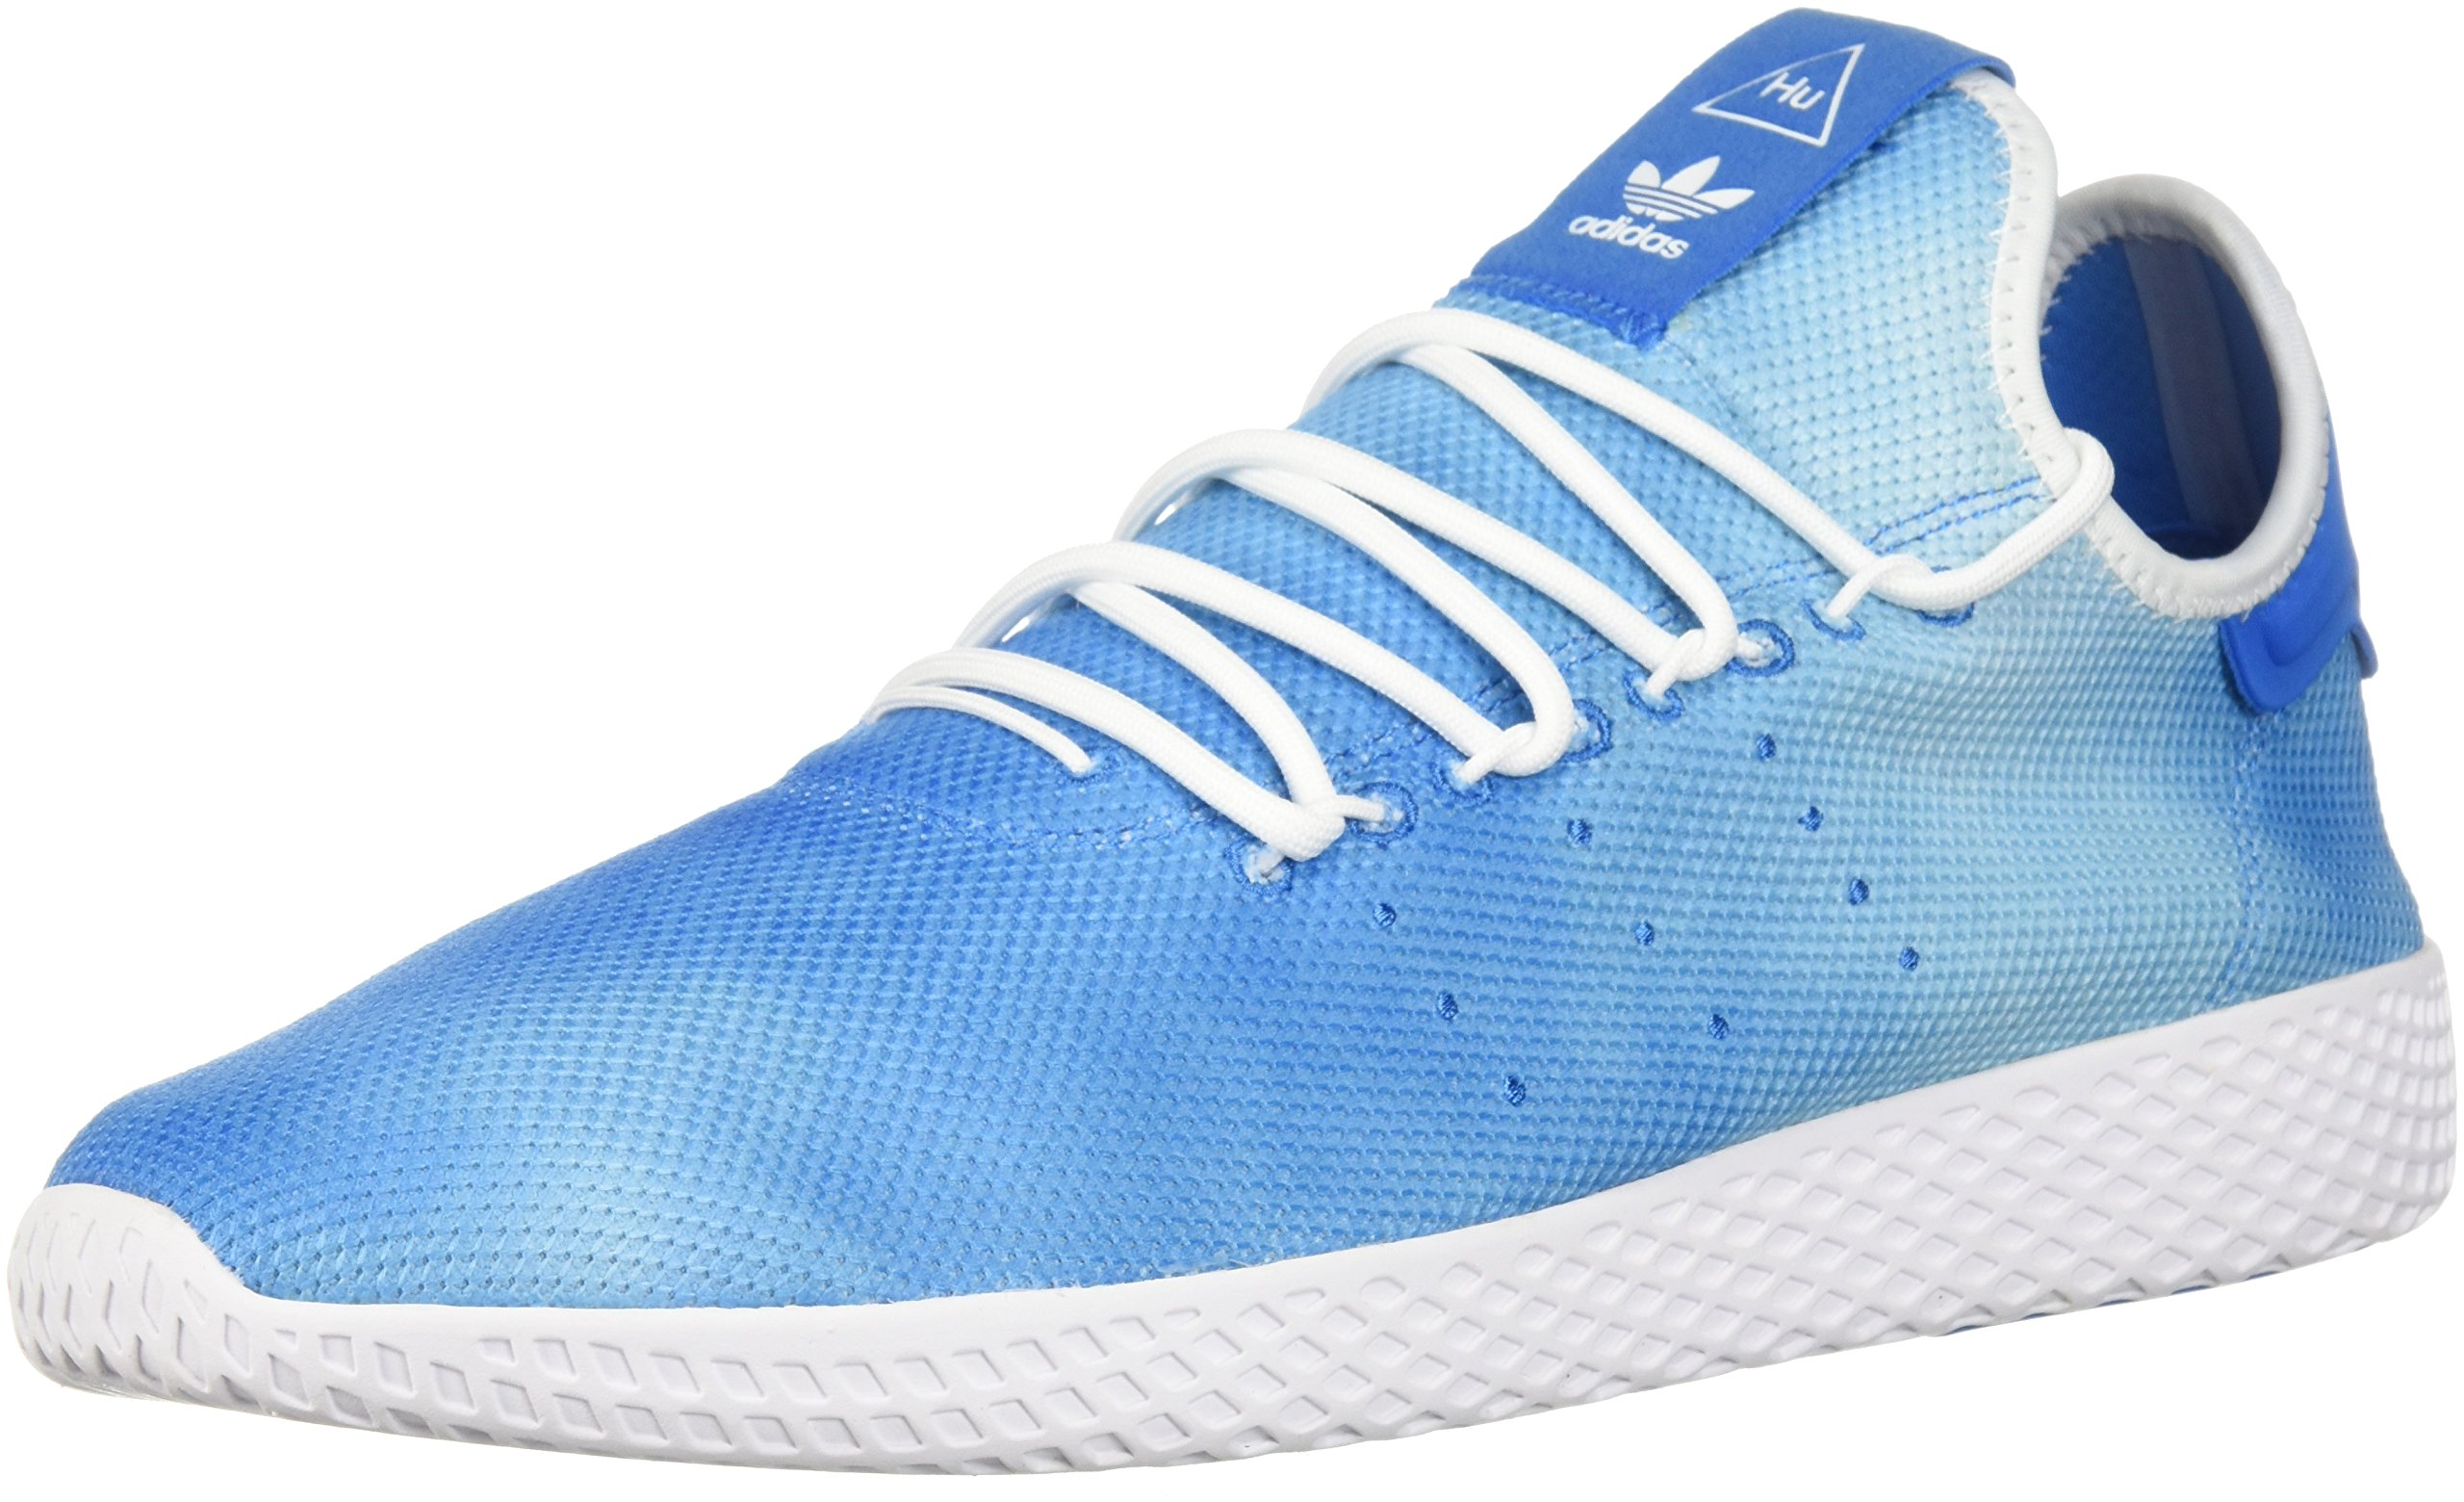 adidas Originals Men's PW Holi Tennis Hu, Bright Blue/White/White, 8.5 M US by adidas Originals